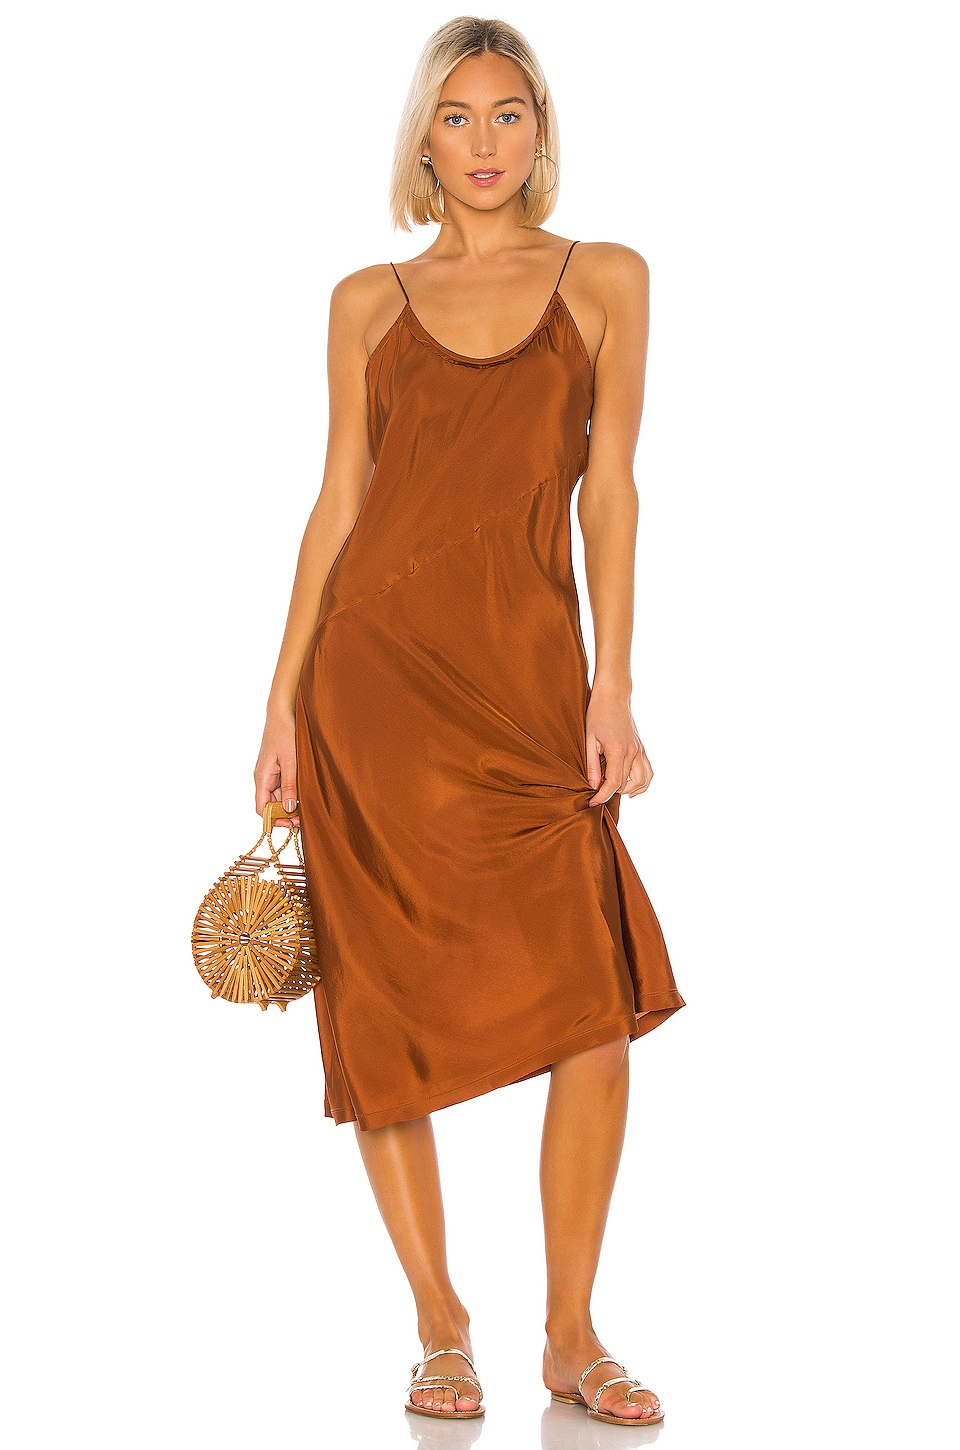 ANAAK Scarlette Slip Dress in Bronze